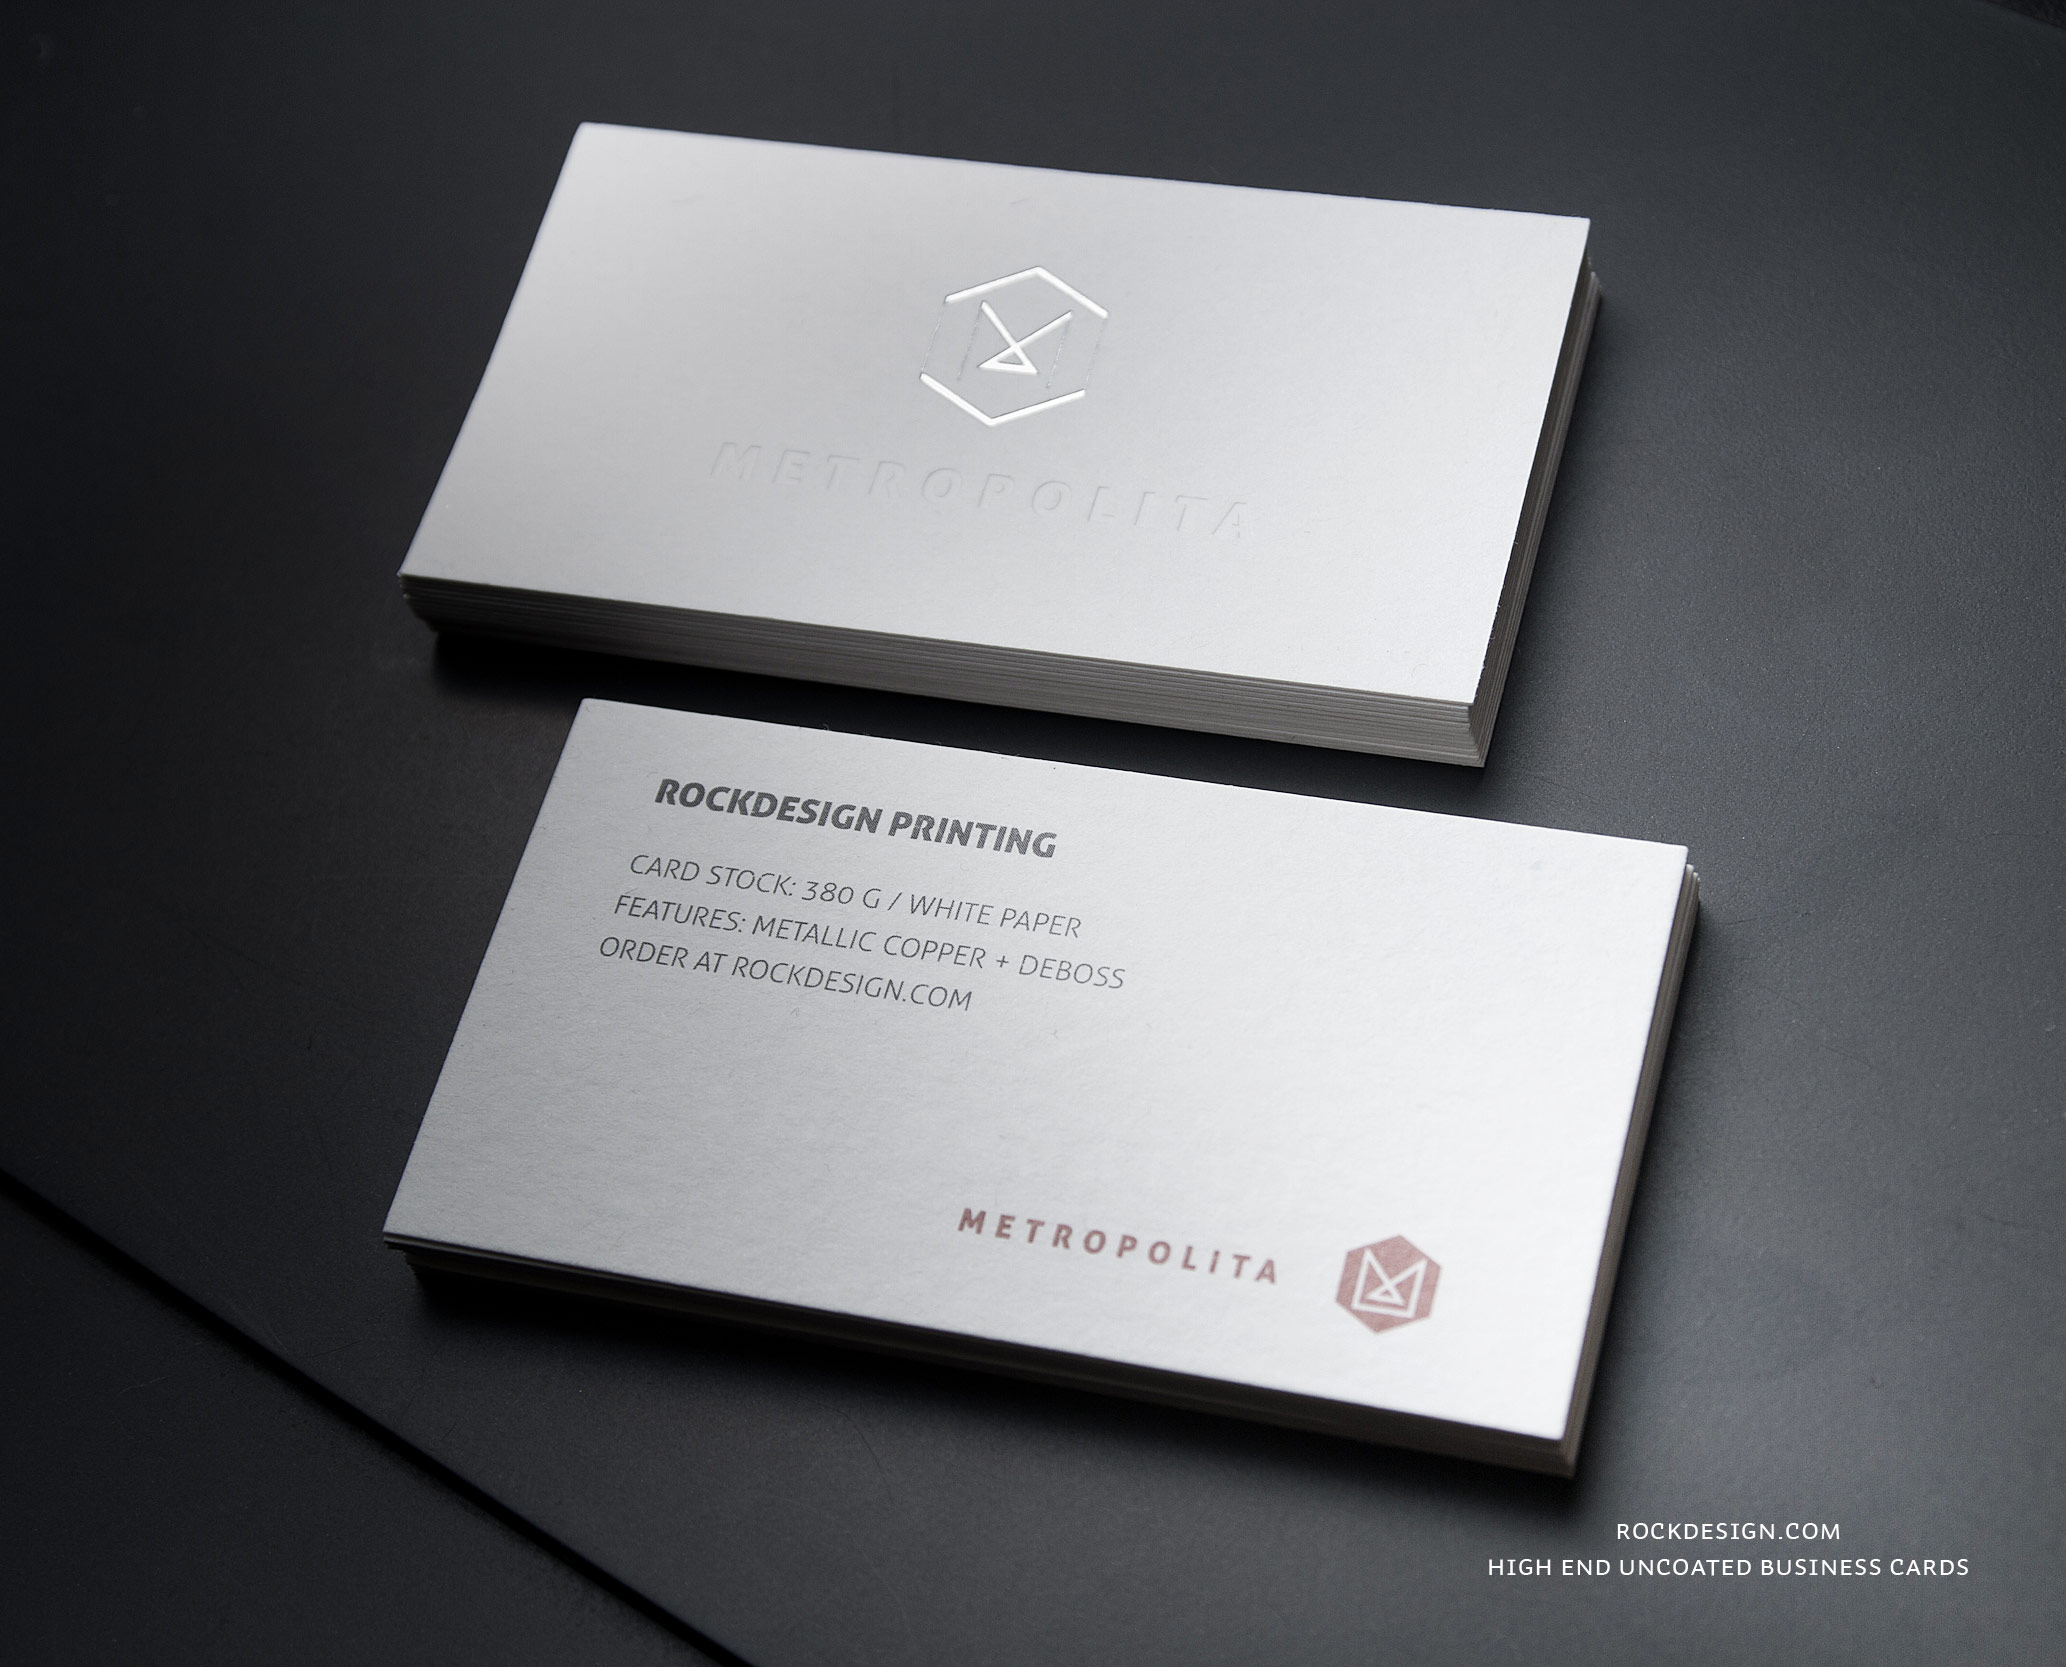 Create business card designs by hemelsiddiquee colourmoves